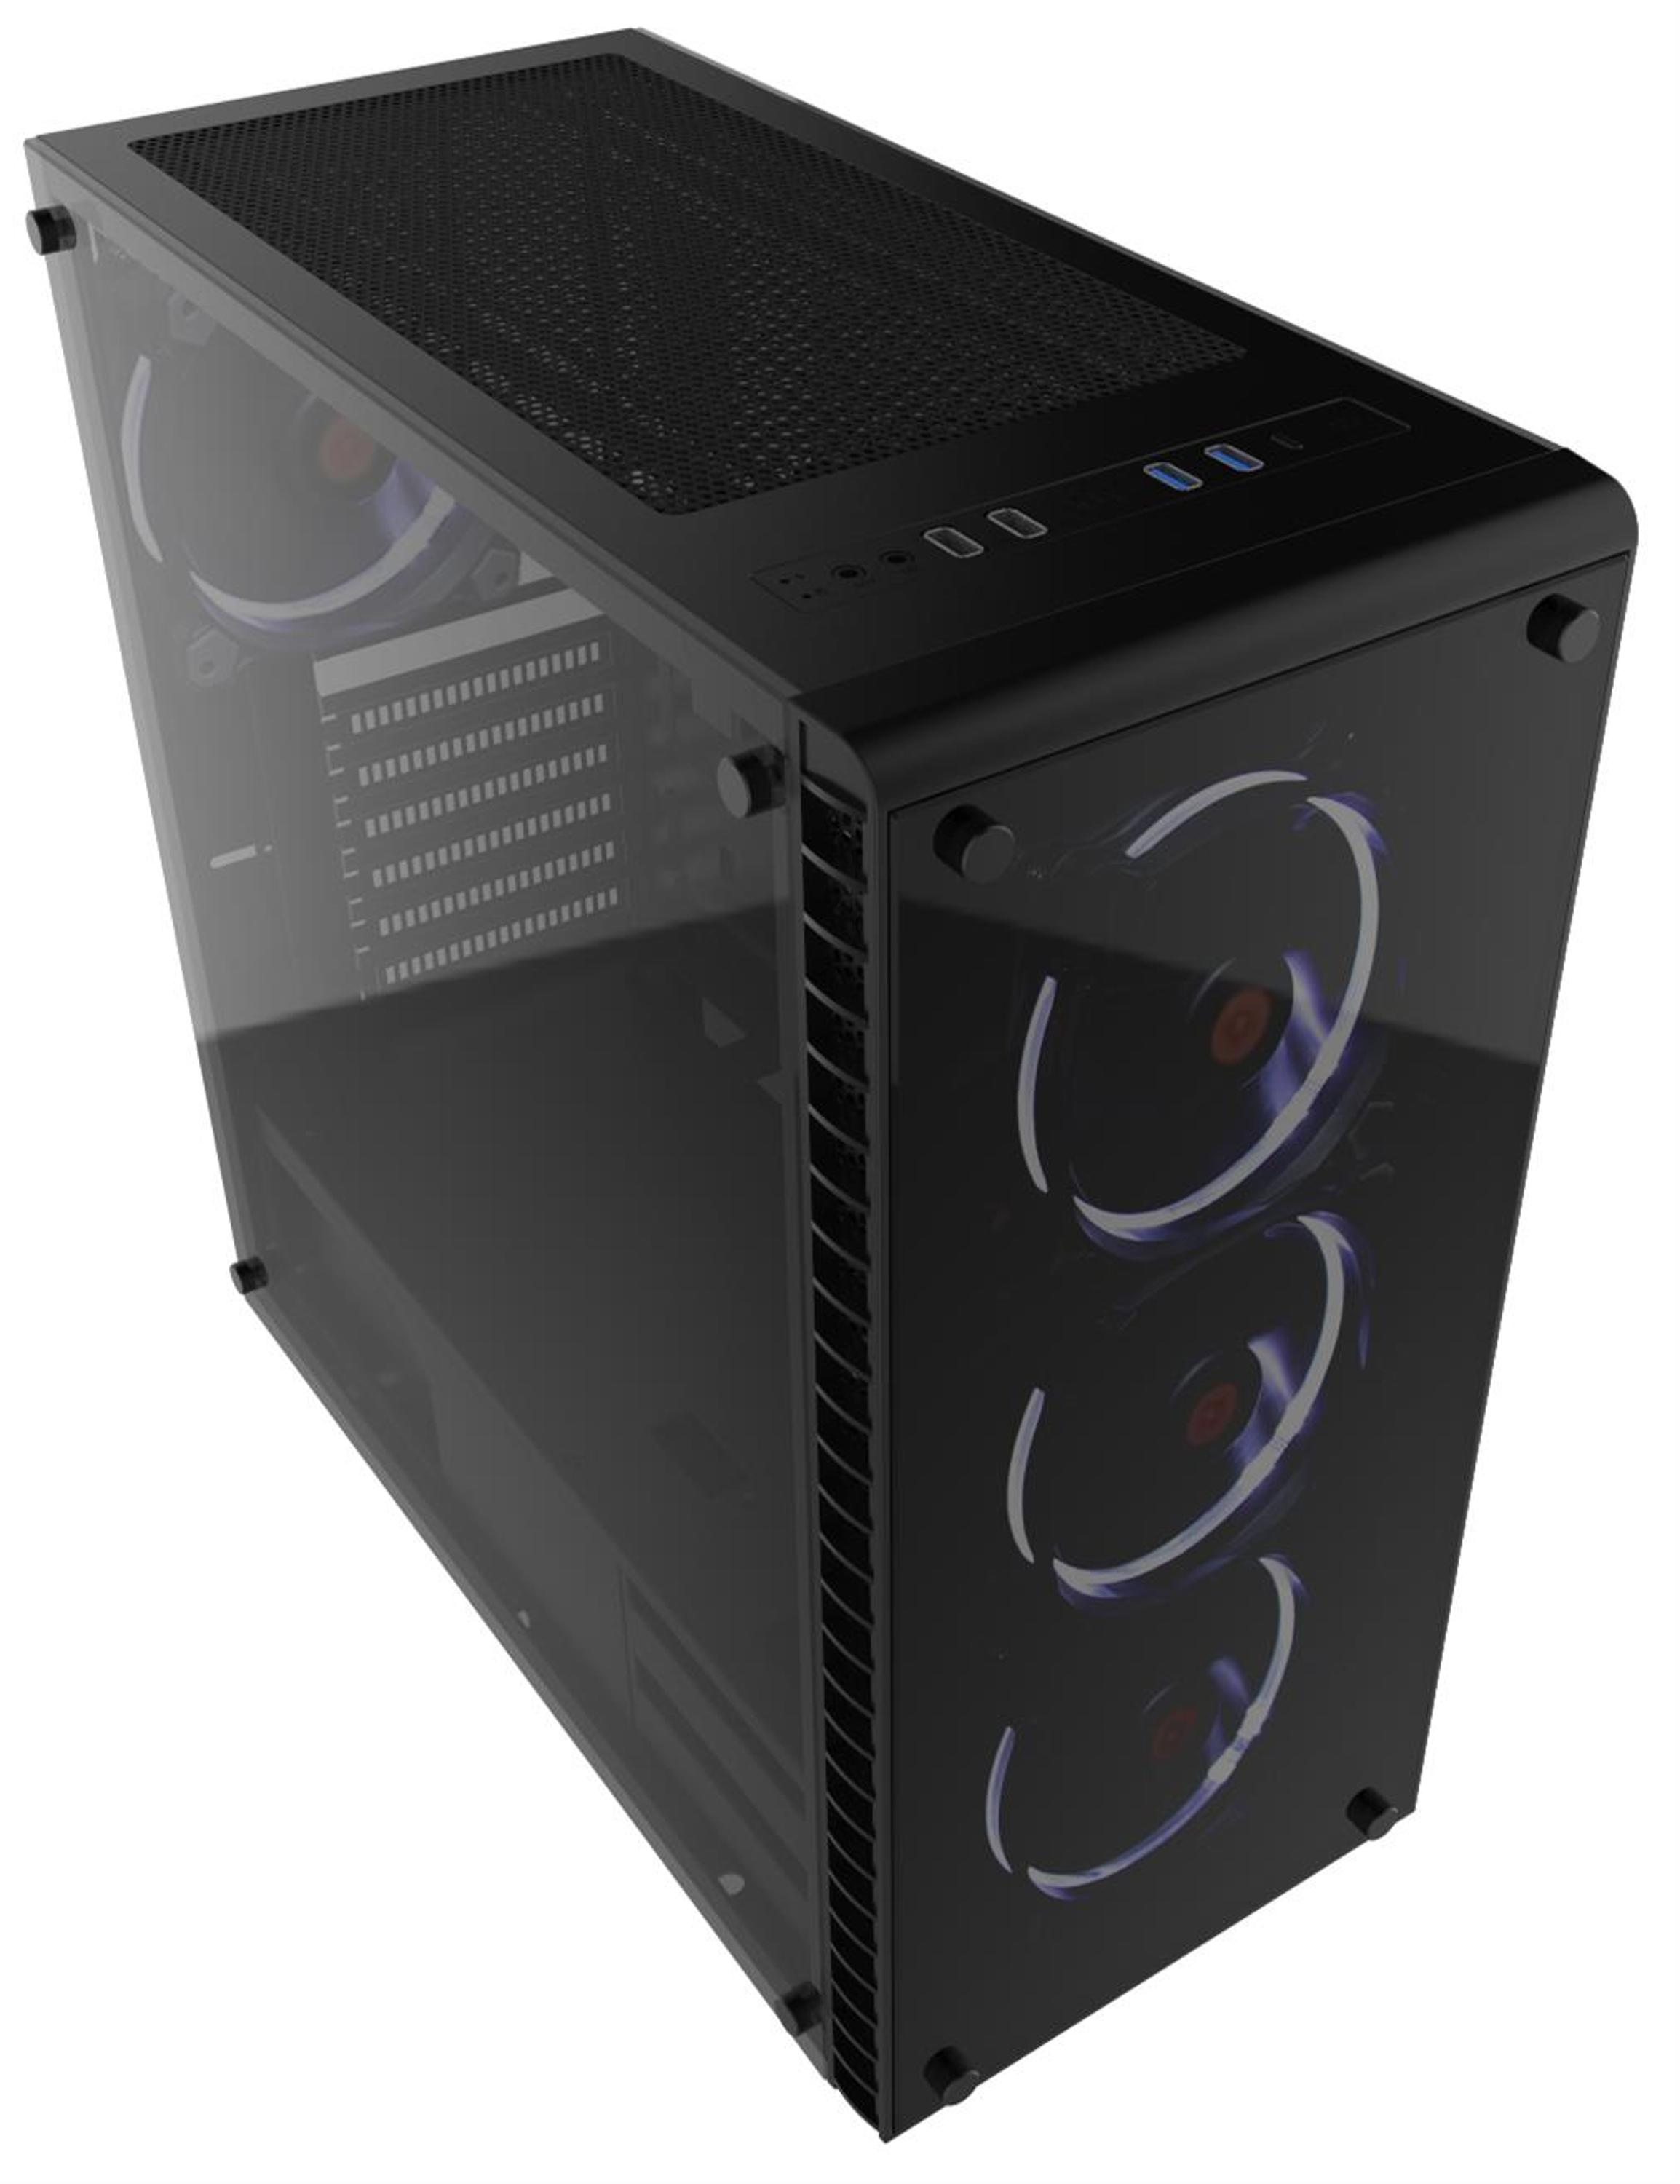 435mm Tall Black Midi Tower Tempered Glass Gaming Case with RGB Fans